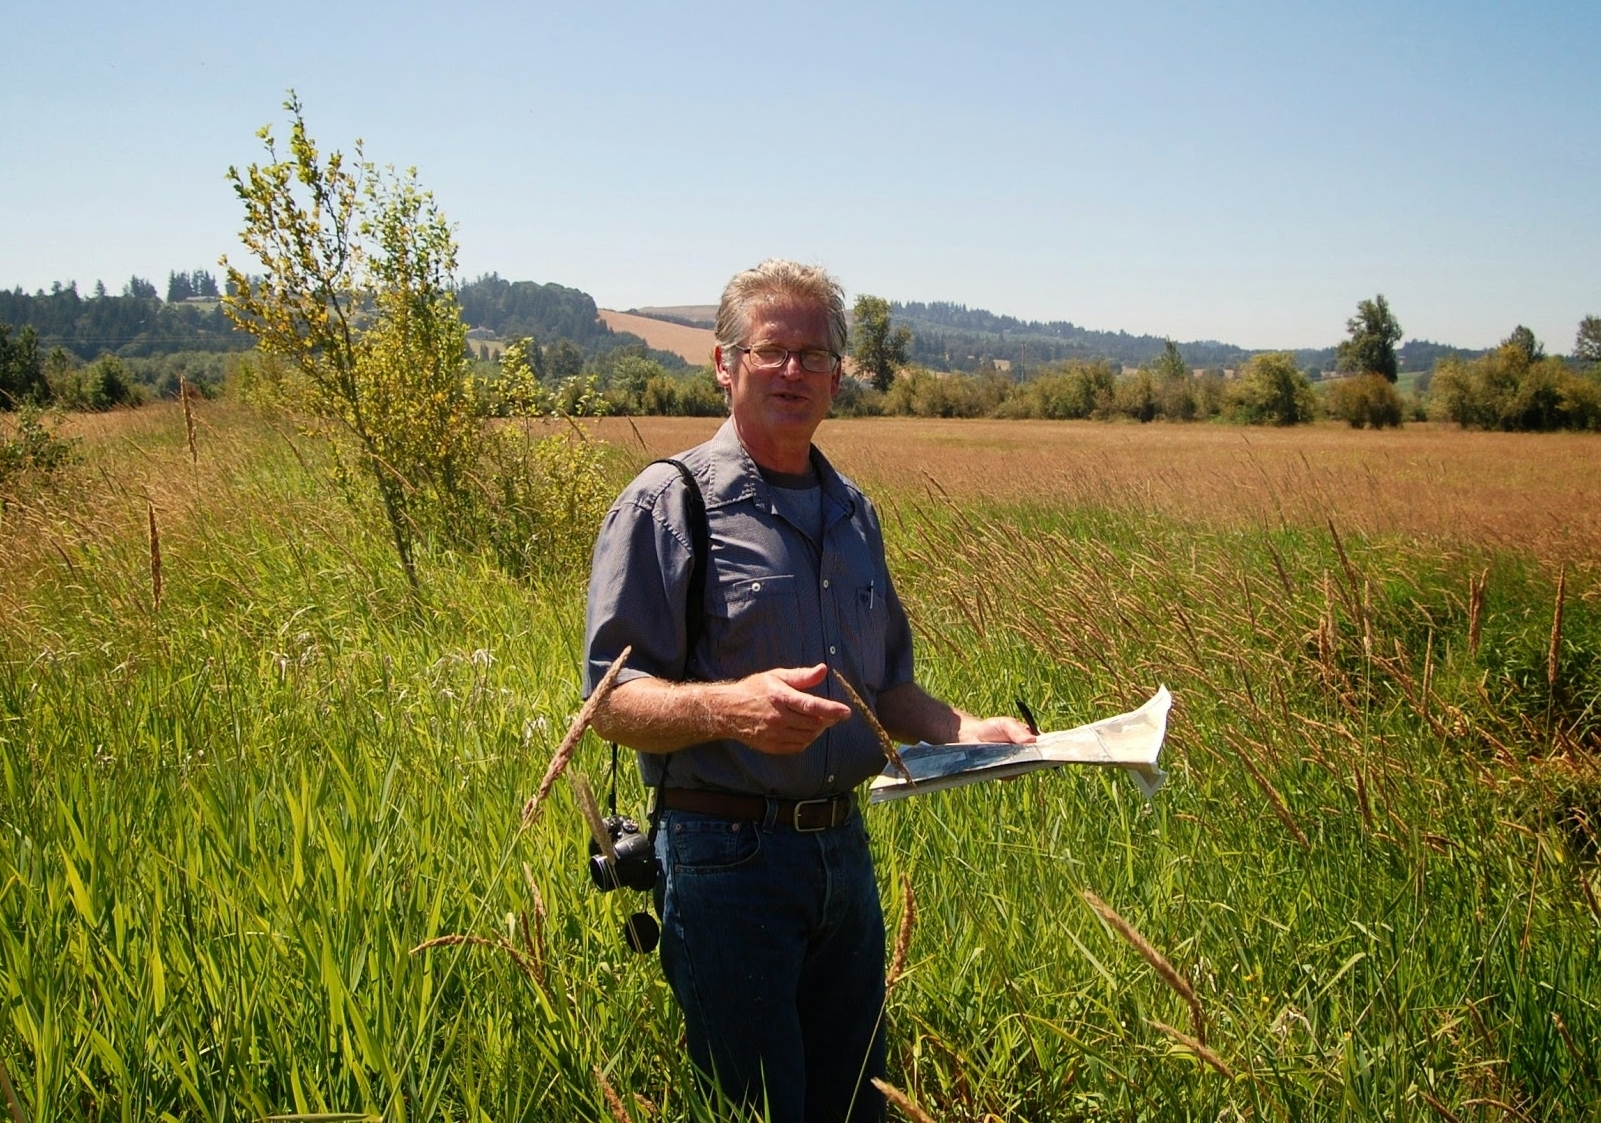 Les Bachelor, District Conservationist, U.S.D.A. Natural Resources Conservation Service, develops conservation plan for Santiam Valley Ranch.